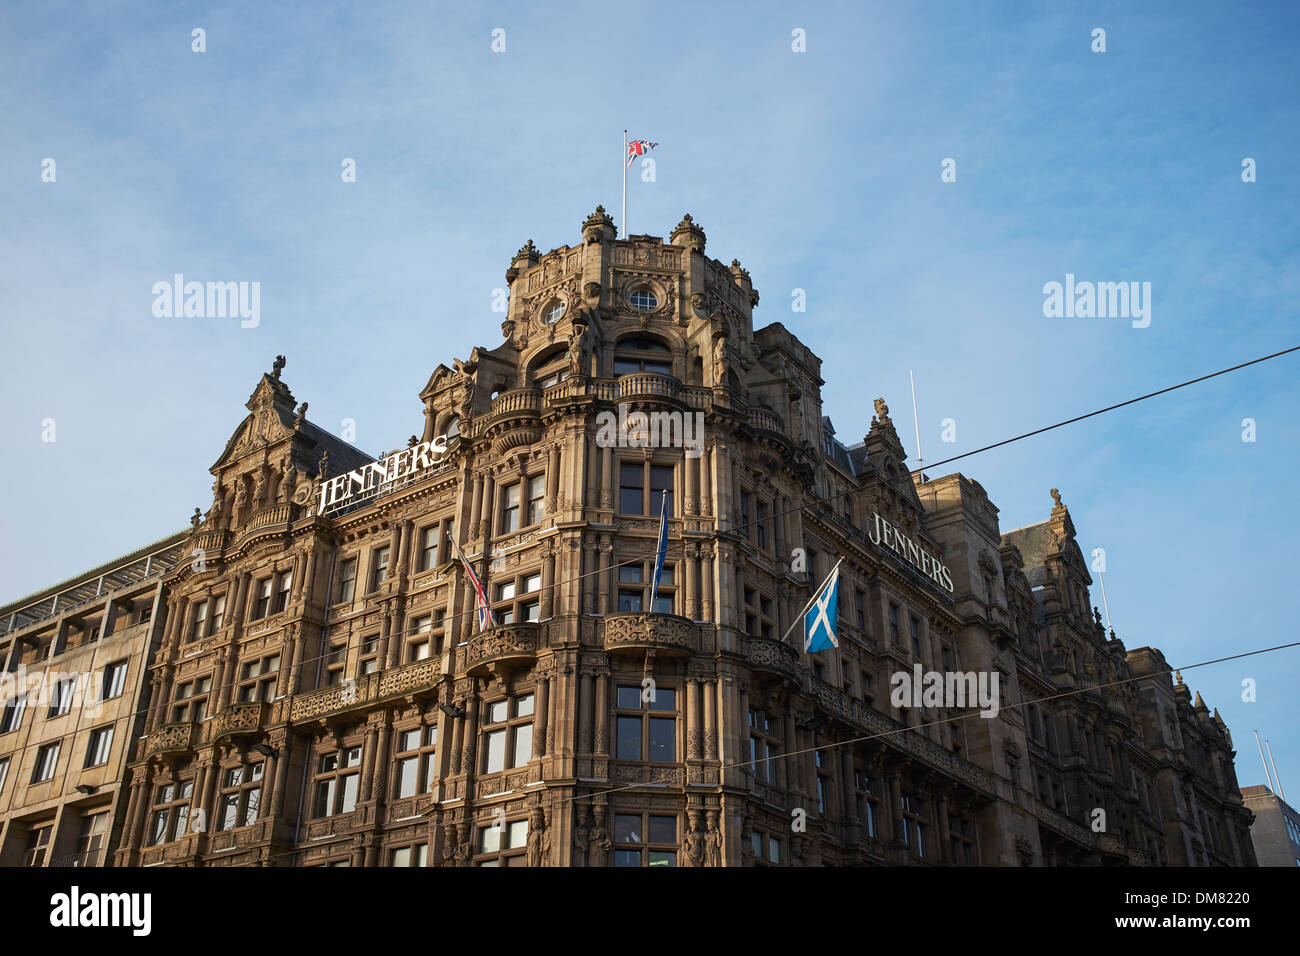 Exterior of the Jenners department store on Princes Street in Edinburgh city centre - Stock Image